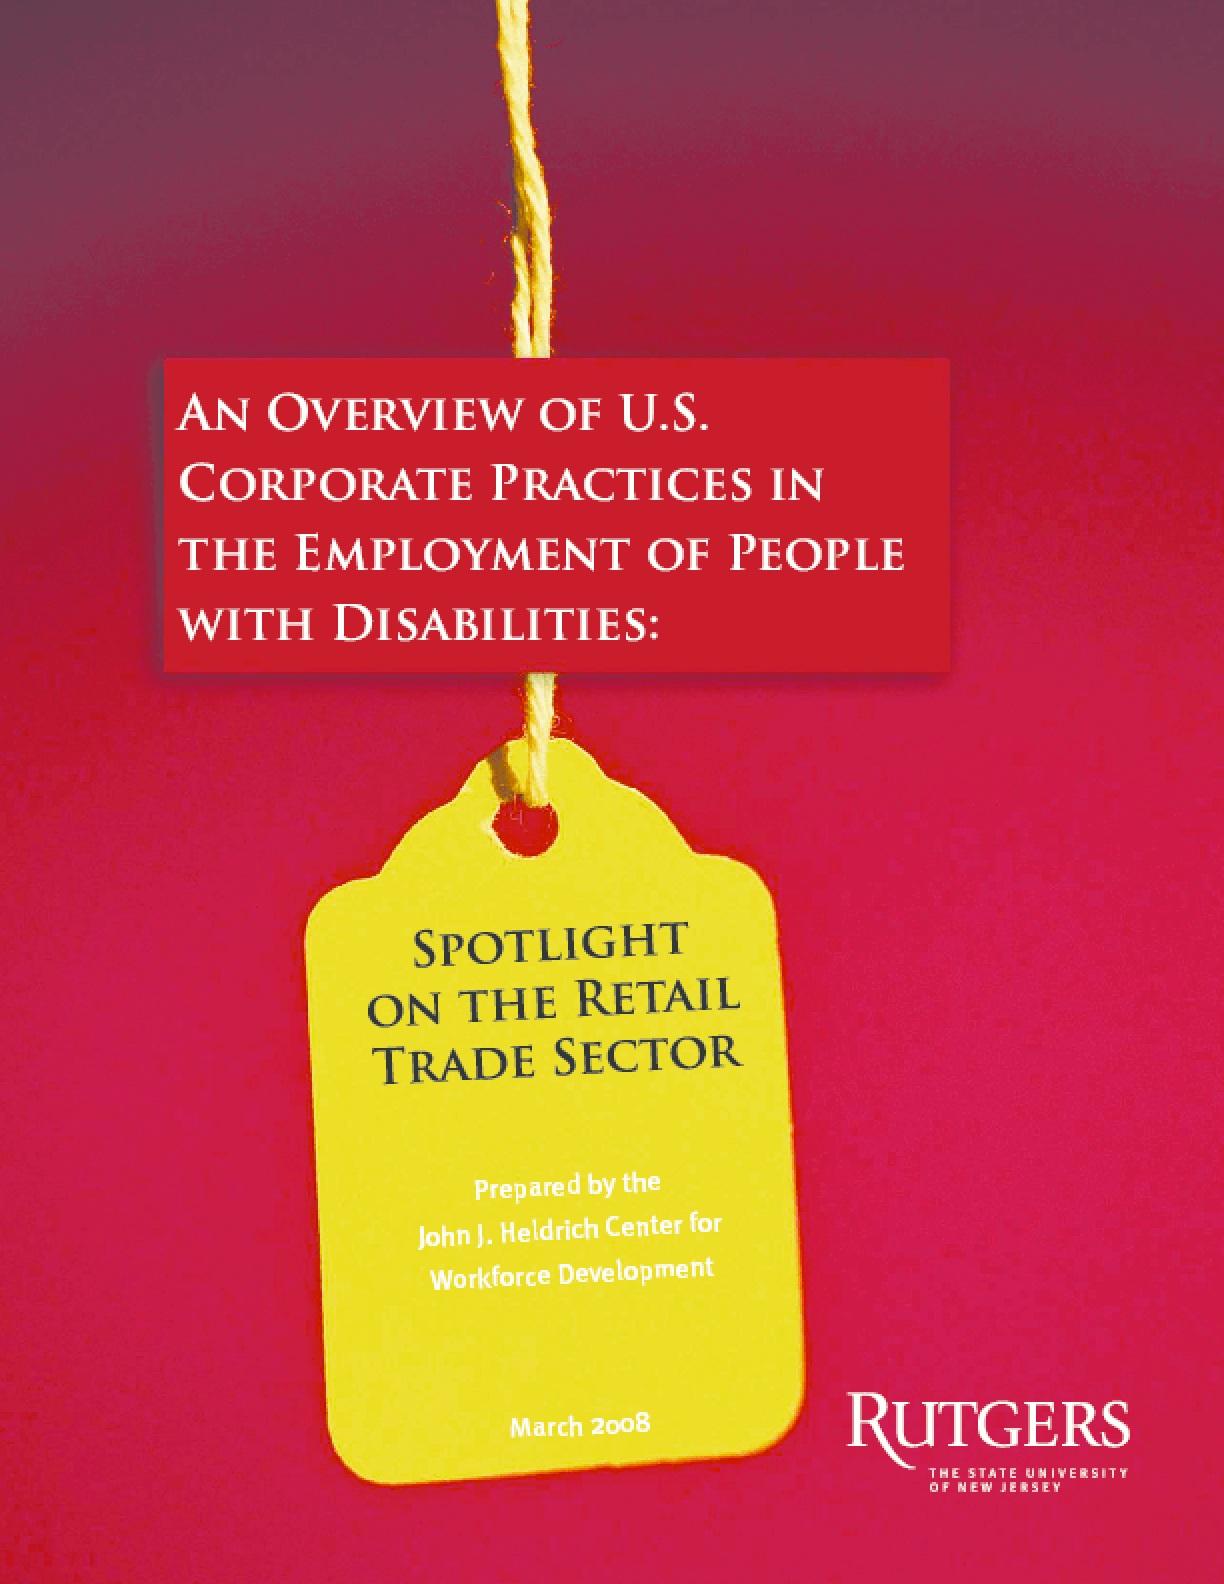 An Overview of U.S. Corporate Policies in the Employment of People with Disabilities: Spotlight on the Retail Trade Sector